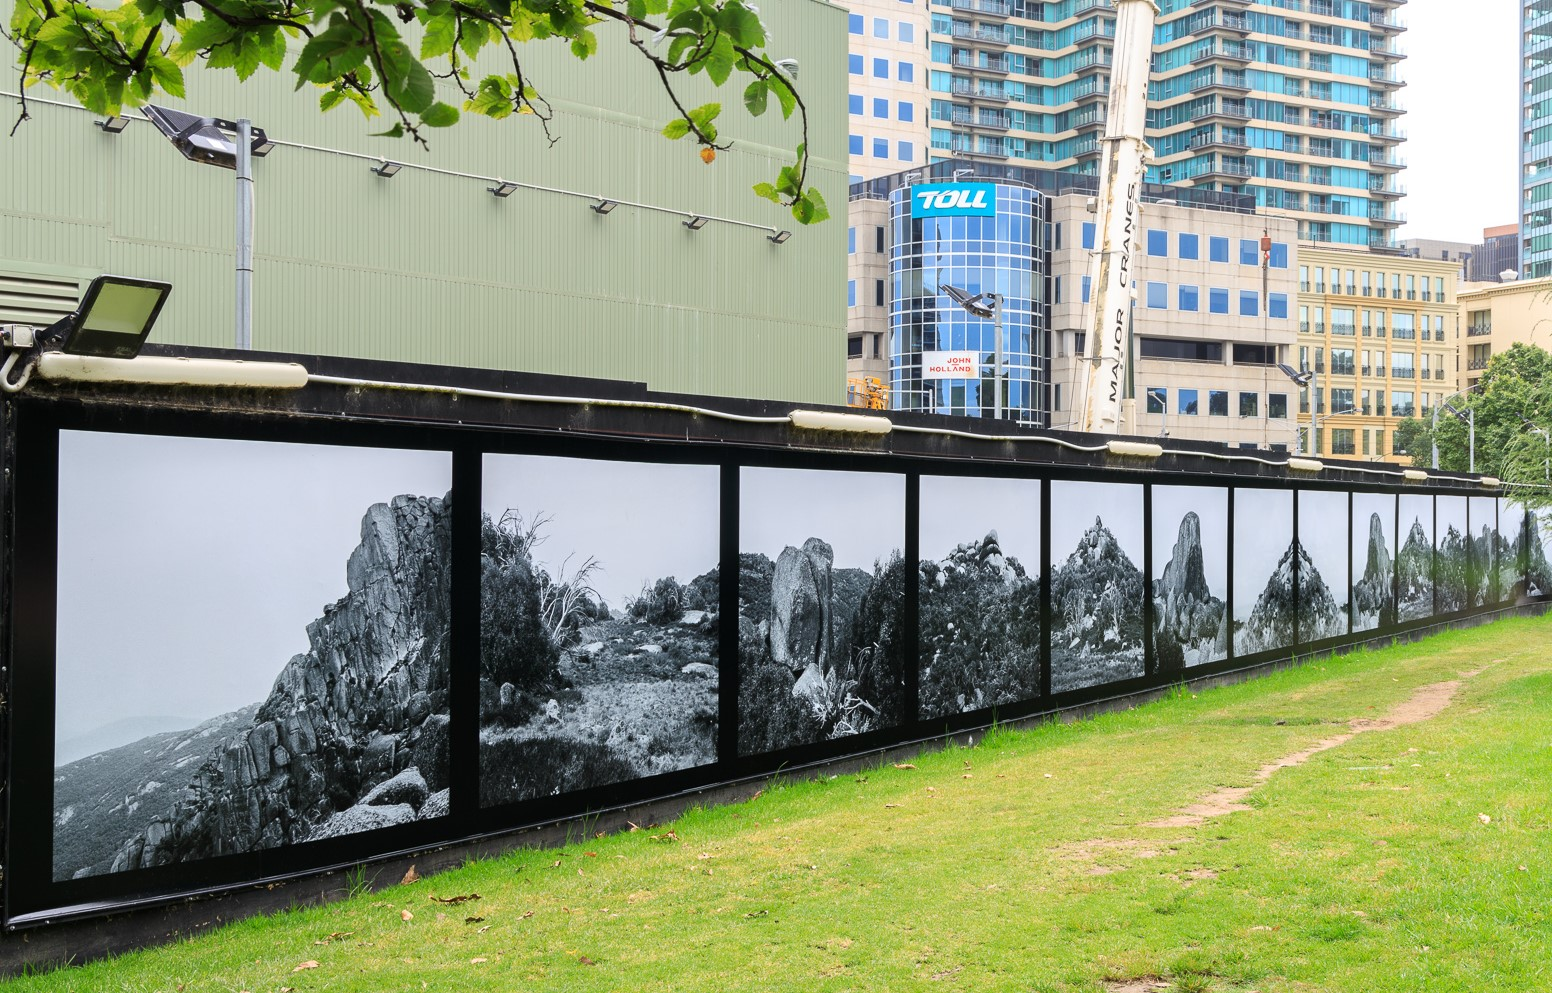 Photographic artworks in a park